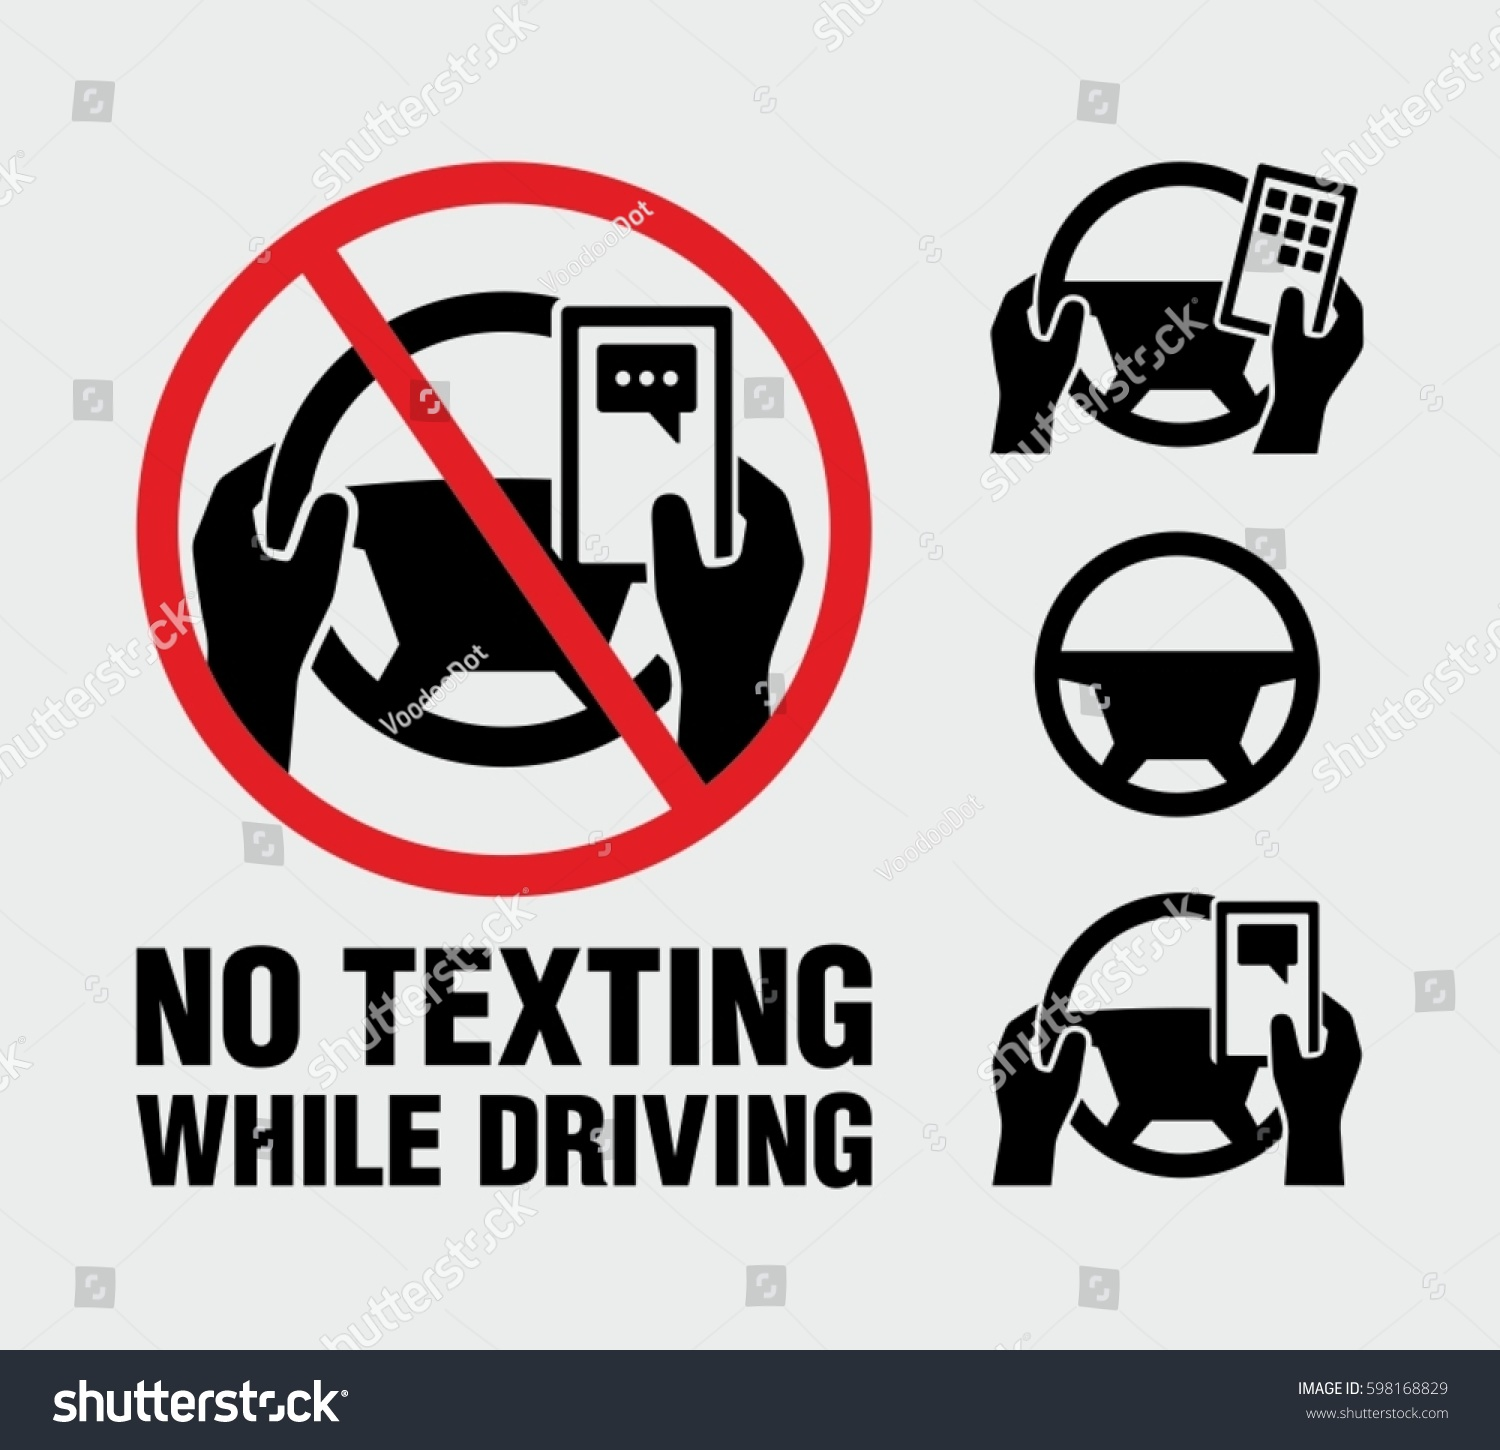 No texting, no cell phone use while driving vector sign